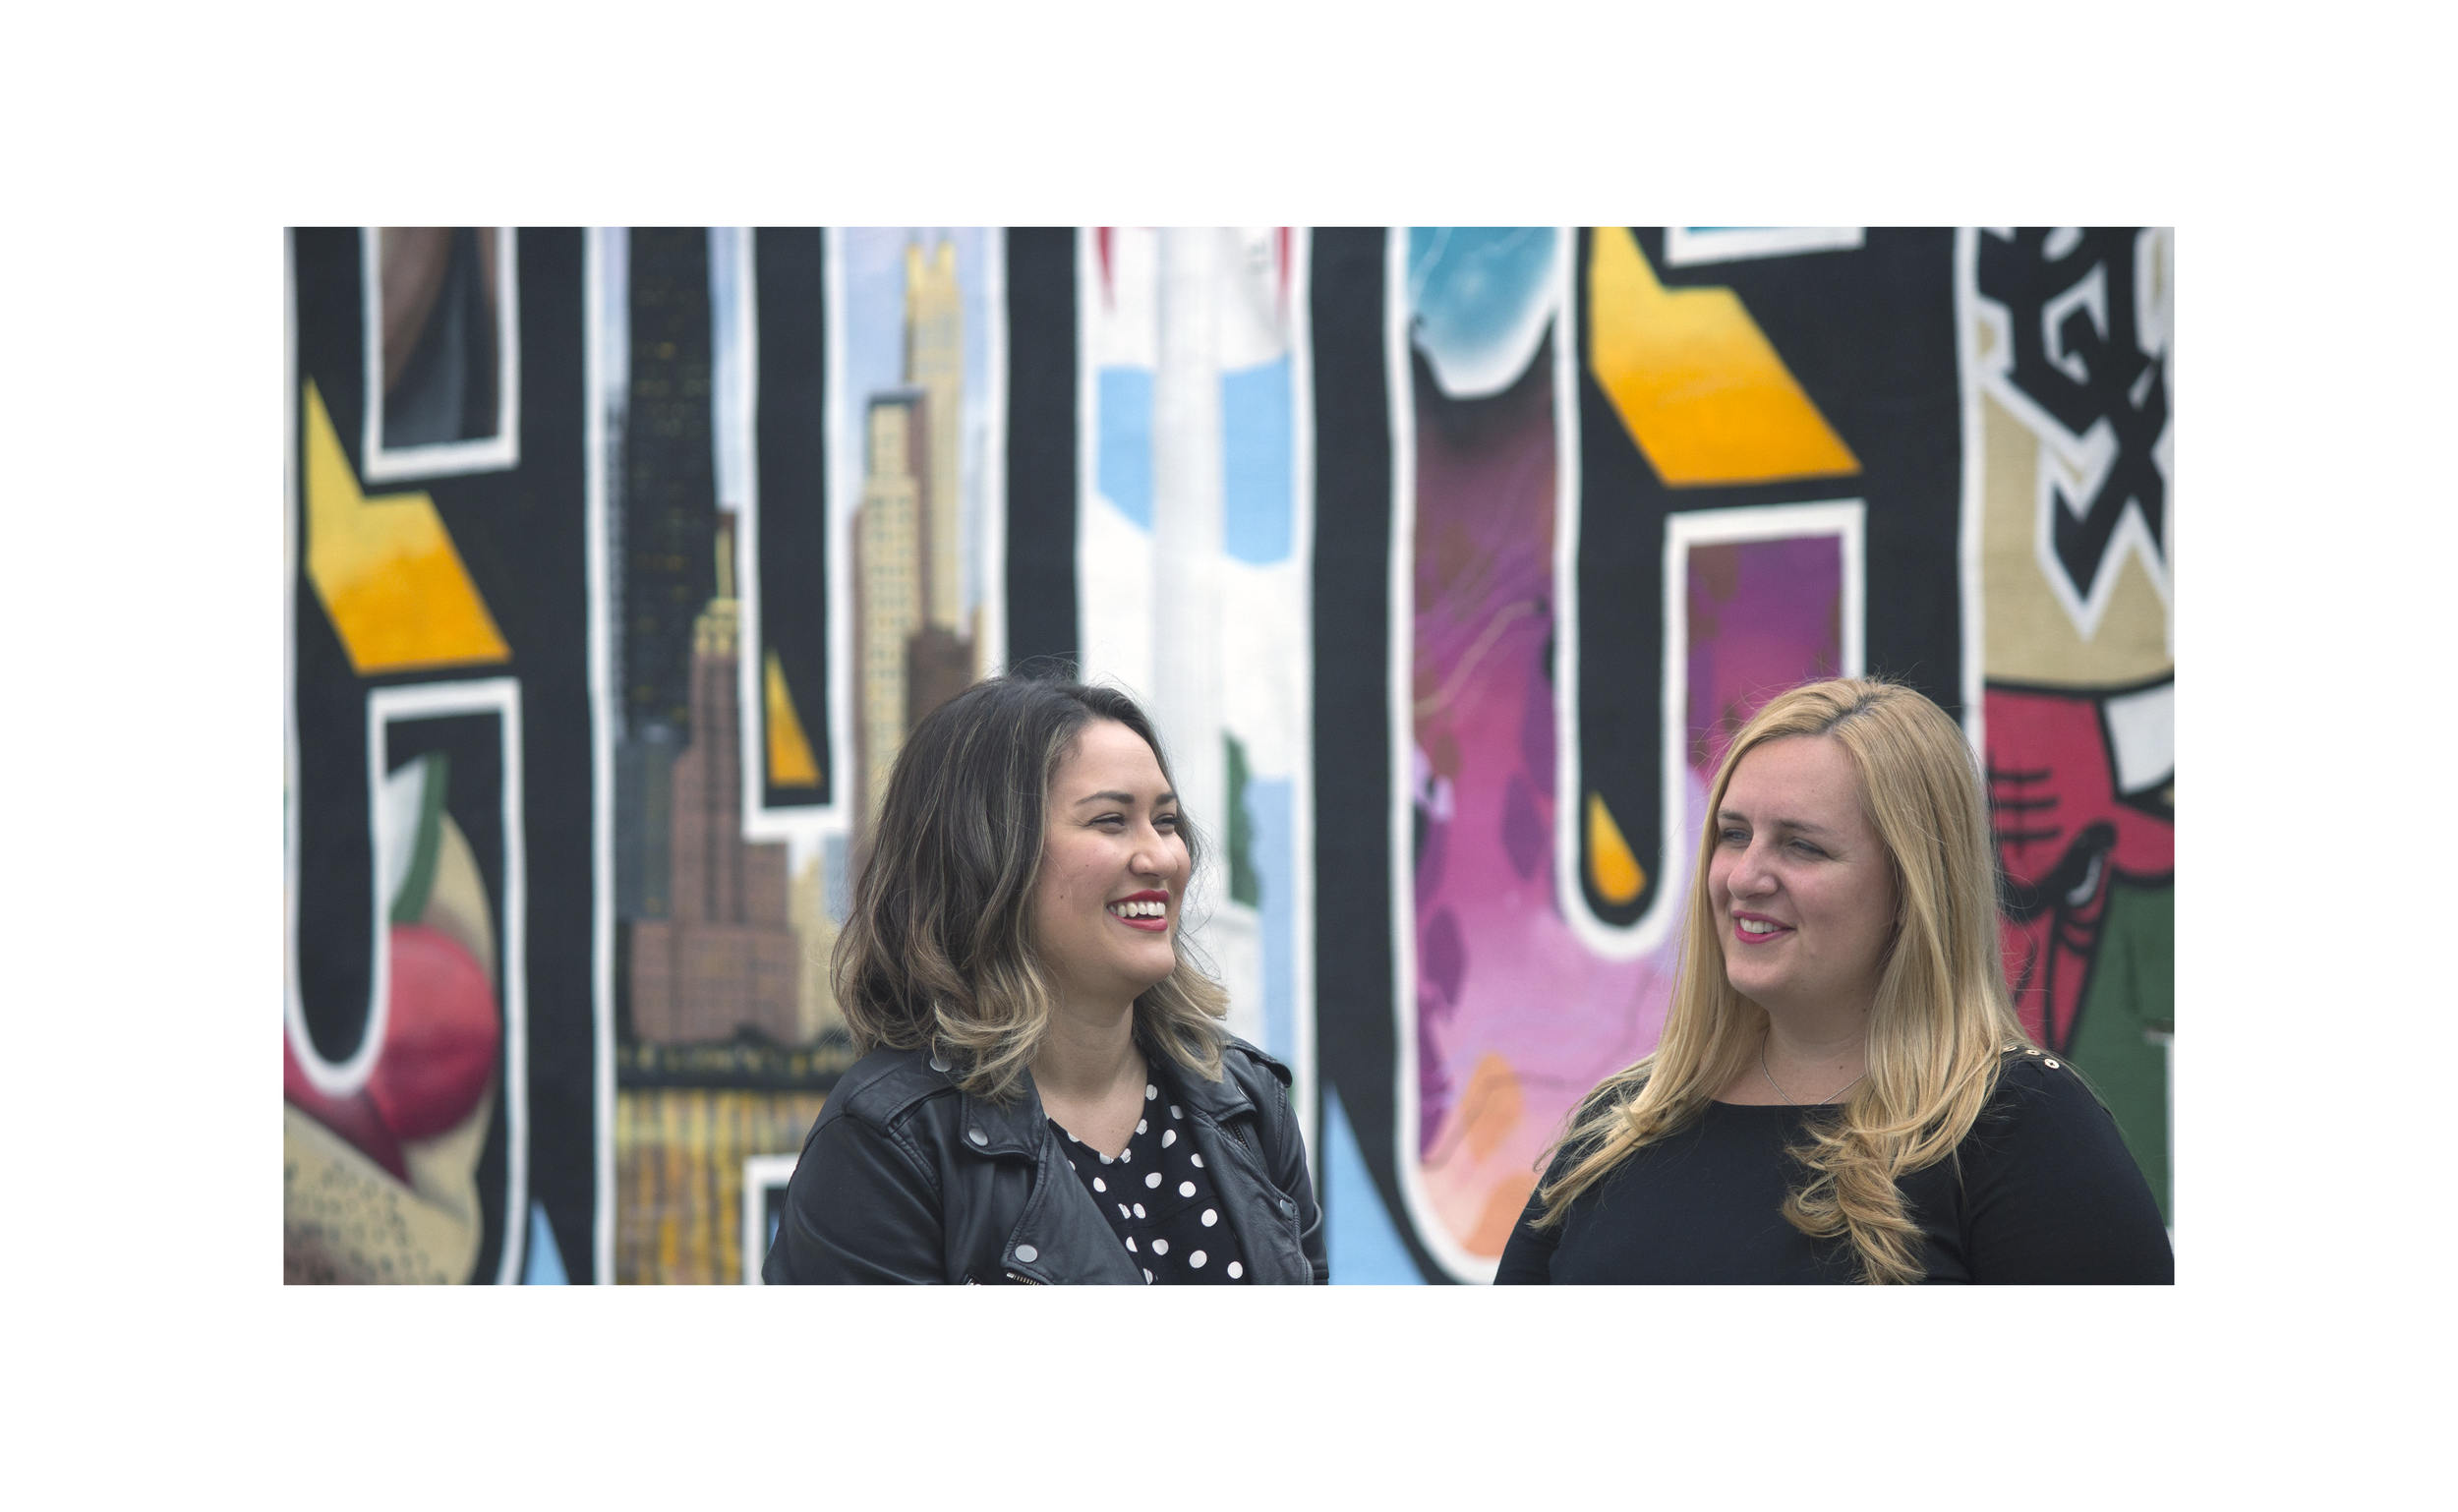 Who is Upfront Work? - We're a women-owned product development consultancy ready to help your company succeed.